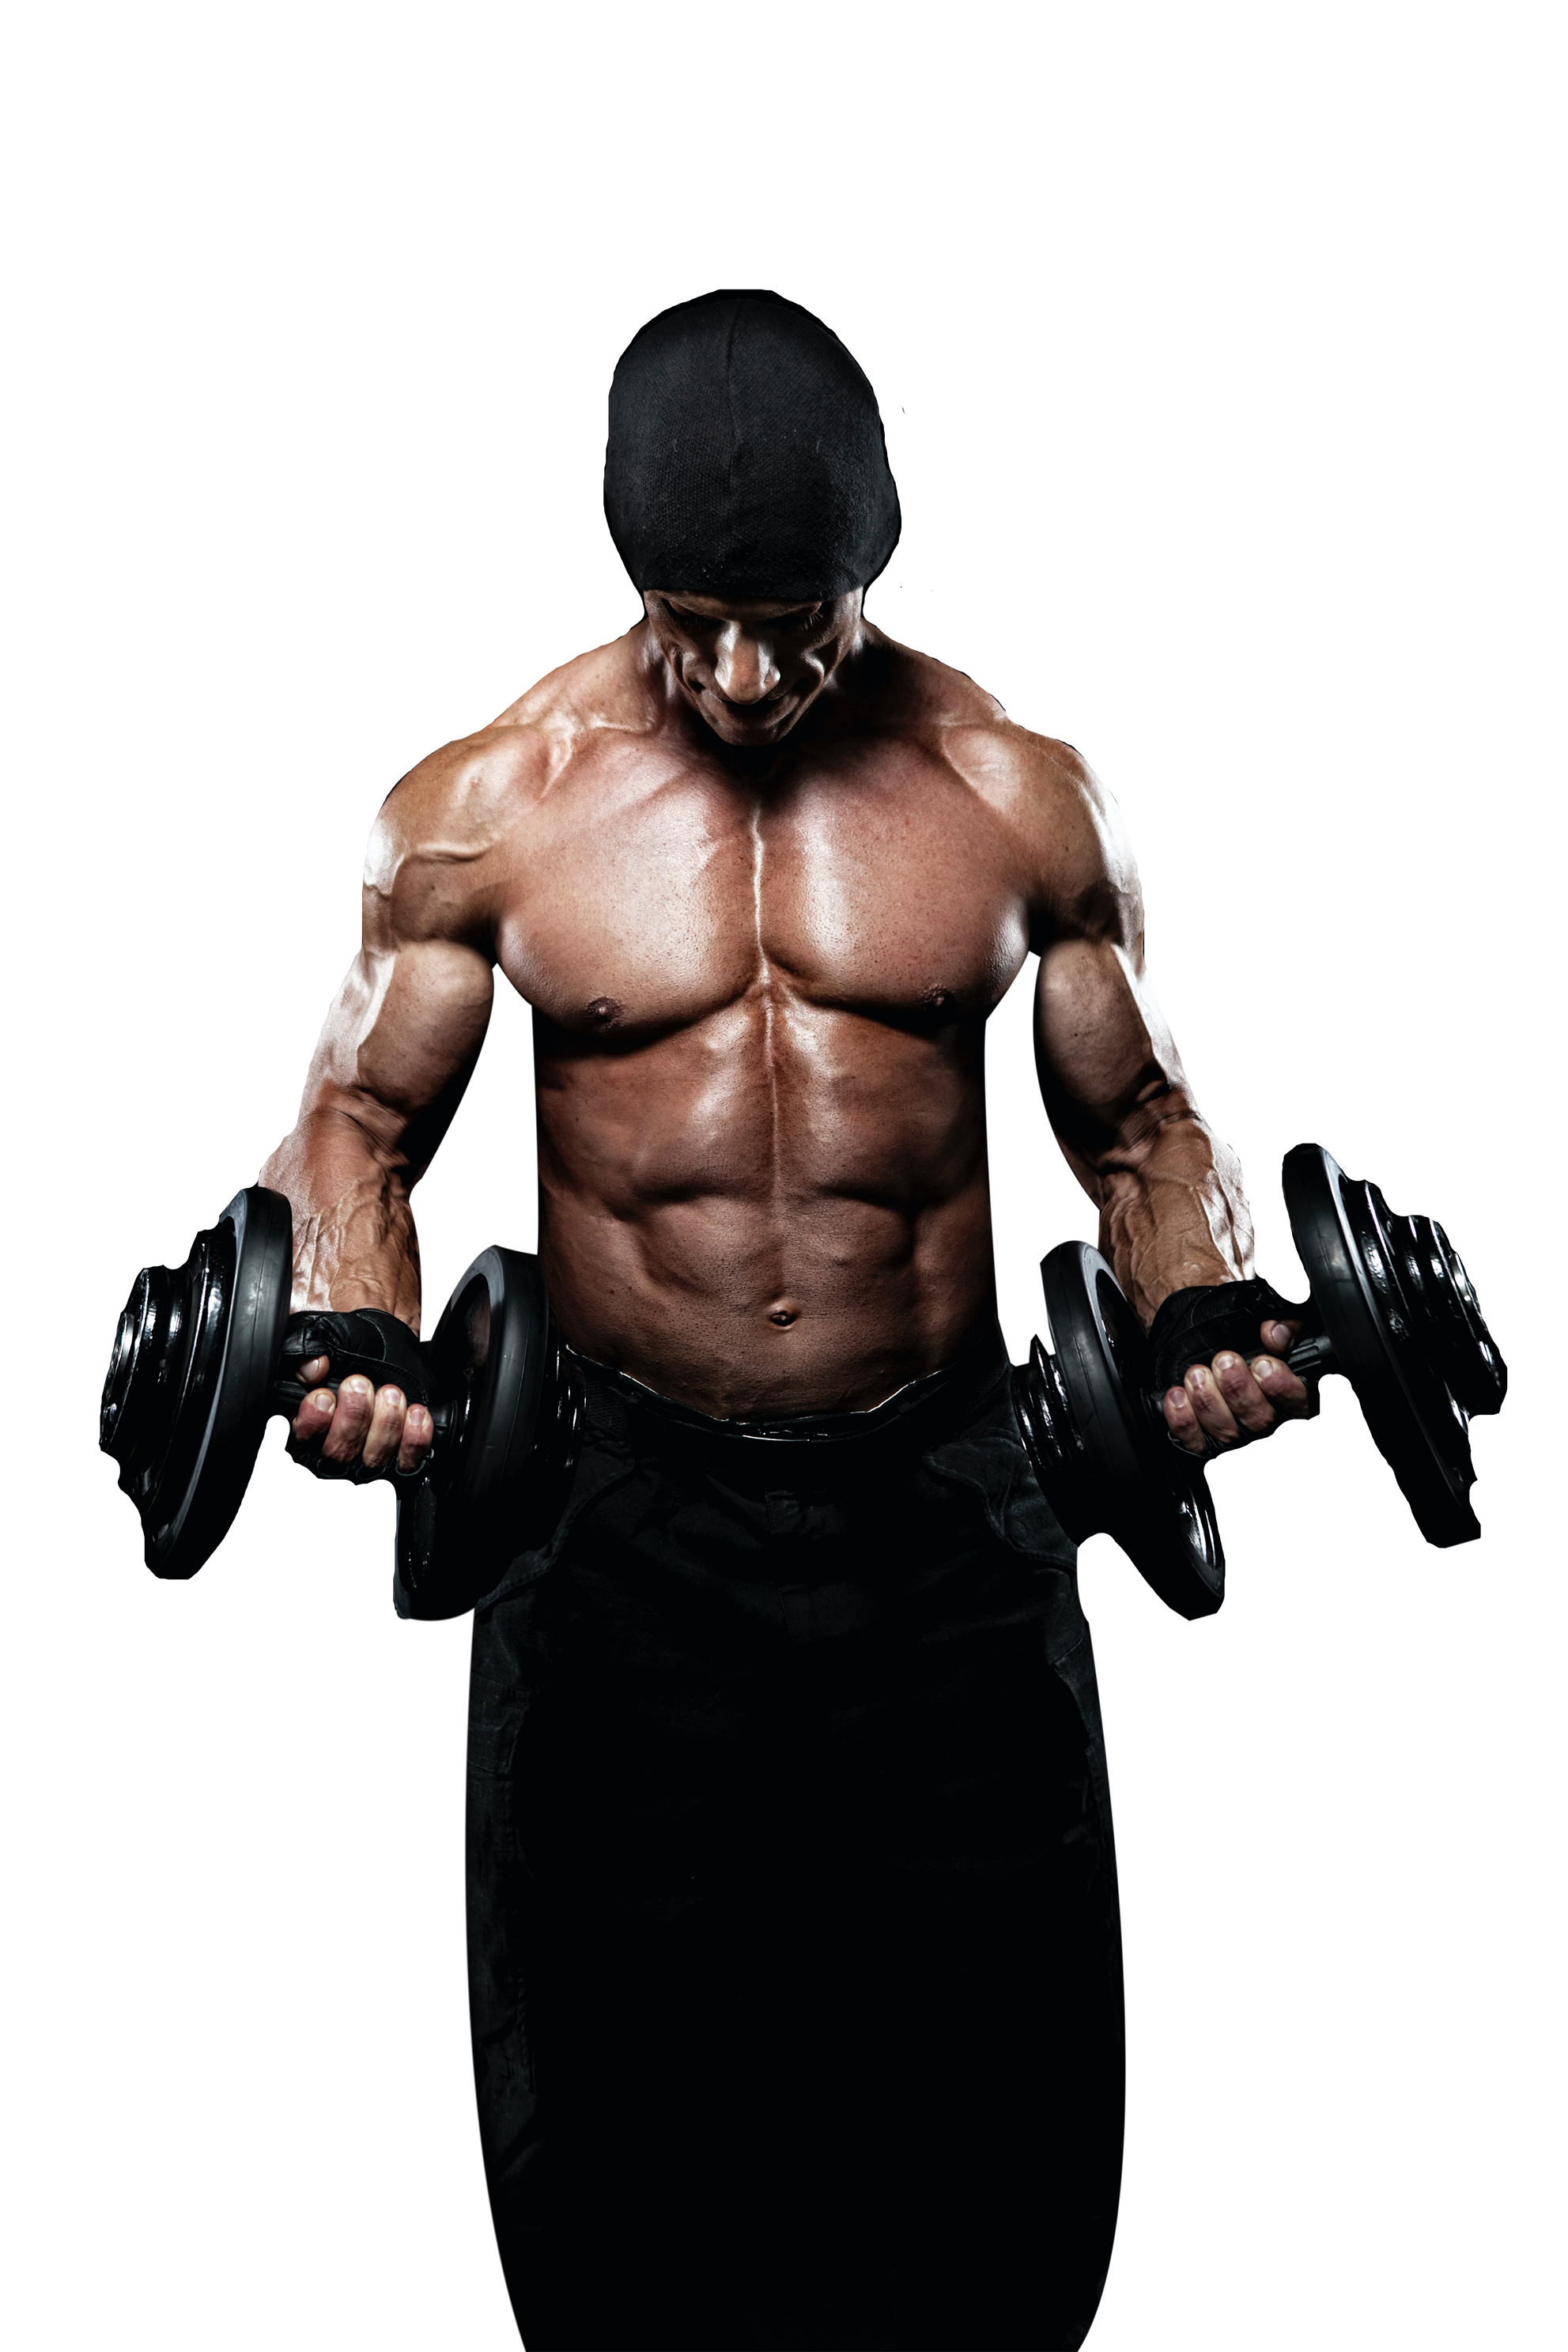 Man doing exercise with two dumbbells transparent background PNG